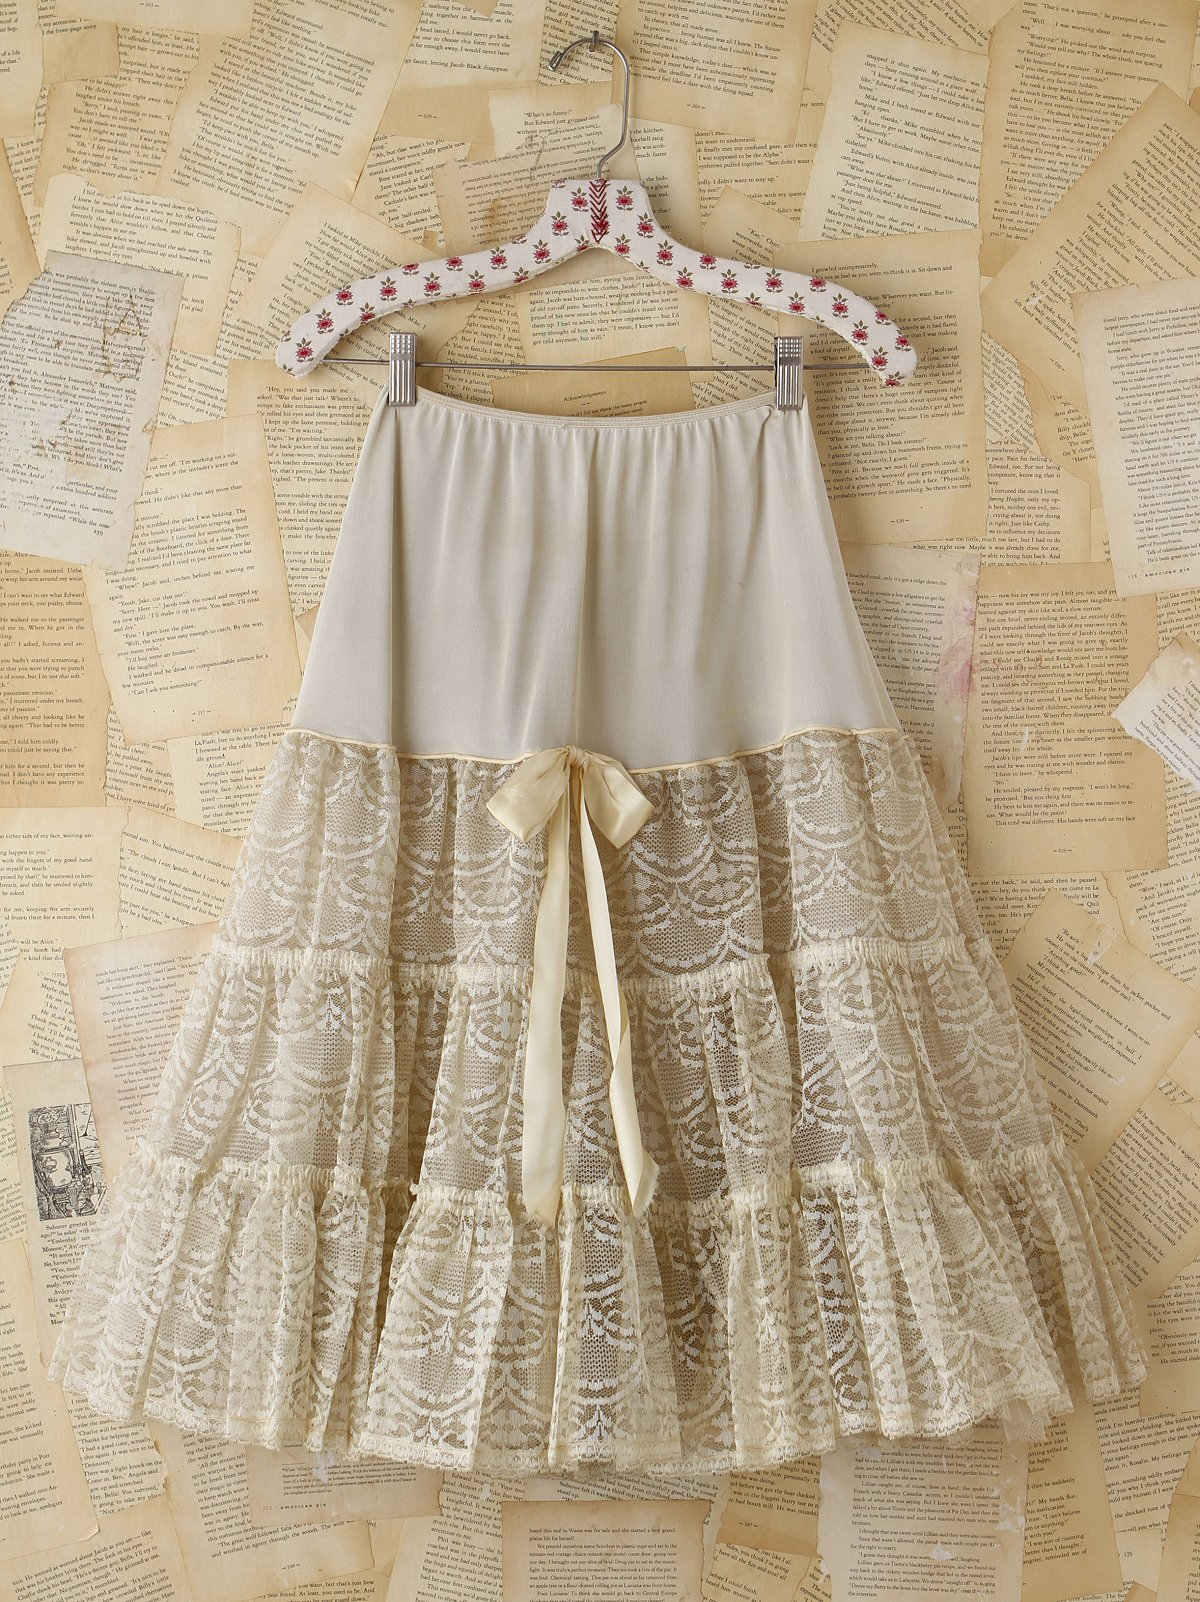 Vintage Creme Tiered Lace and Tulle Skirt